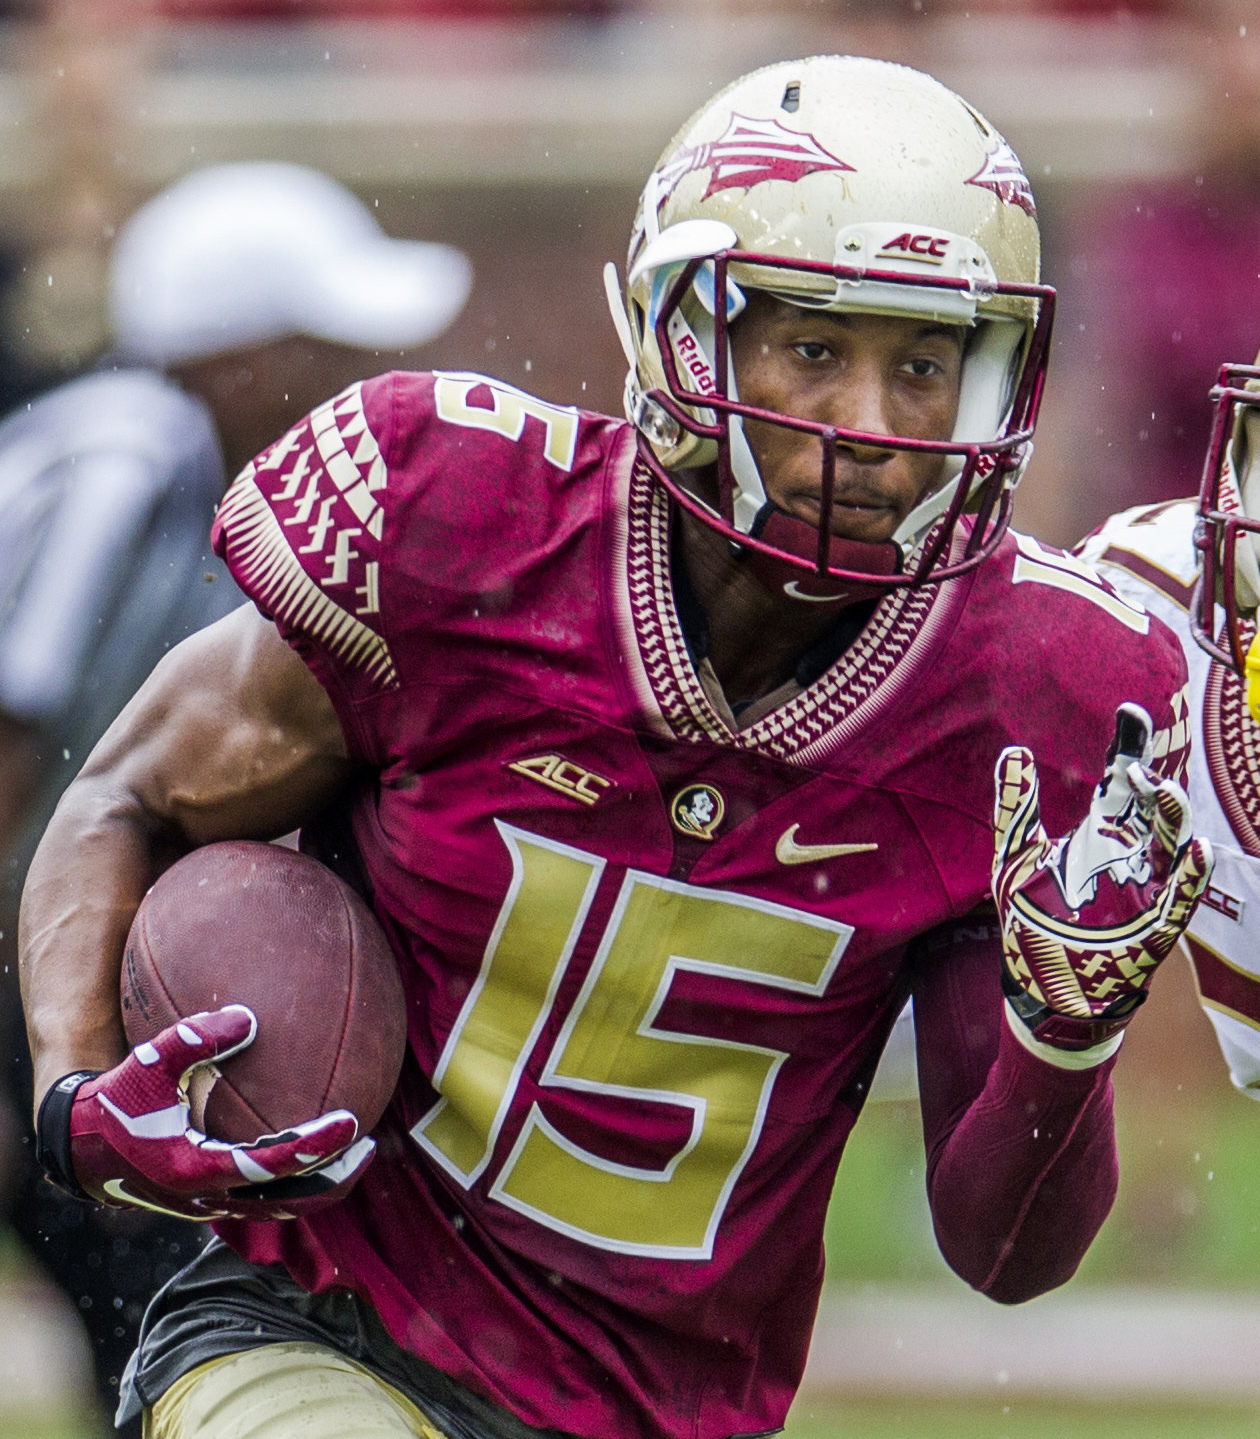 FILE - In this April 11, 2015, file photo, Florida State wide receiver Travis Rudolph run in the first half of the Florida State Garnet & Gold spring college football game in Tallahassee, Fla. Rudolph reunited with Bo Paske on Monday, Sept. 5, 2016,  befo